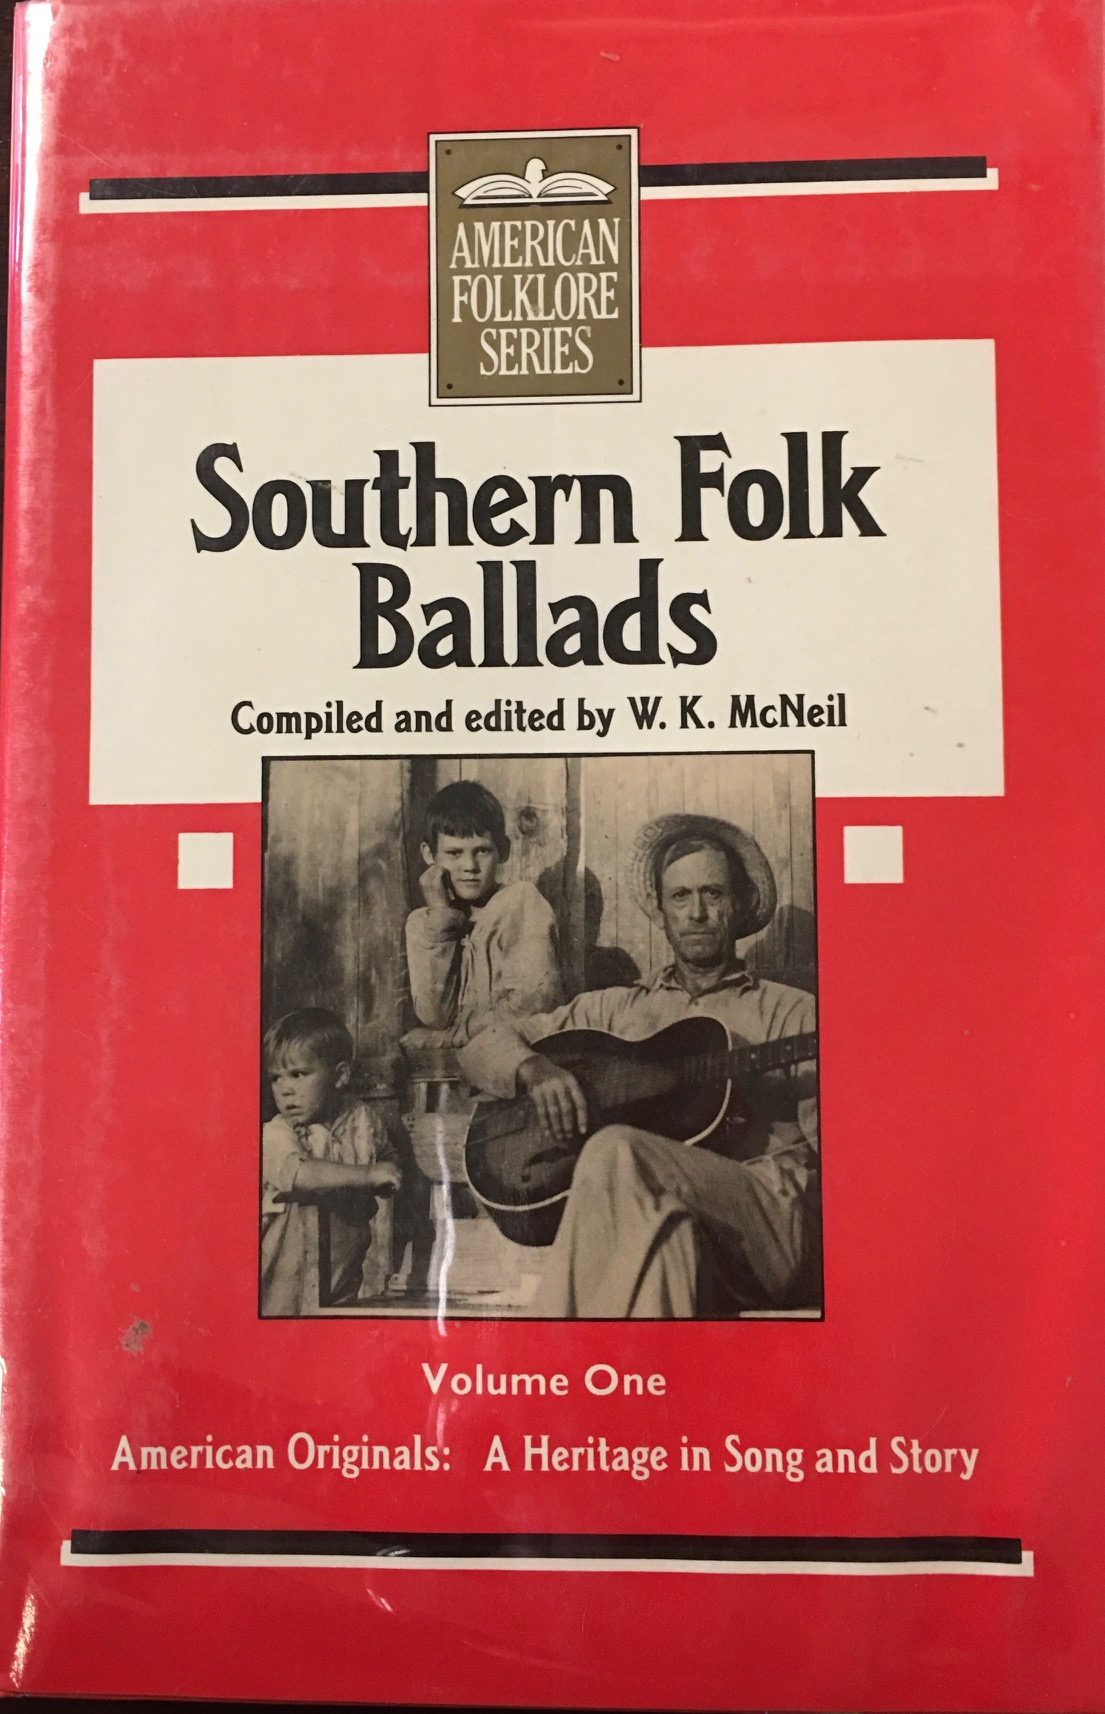 Image for Southern Folk Ballads - Volume One (American Folklore Series)